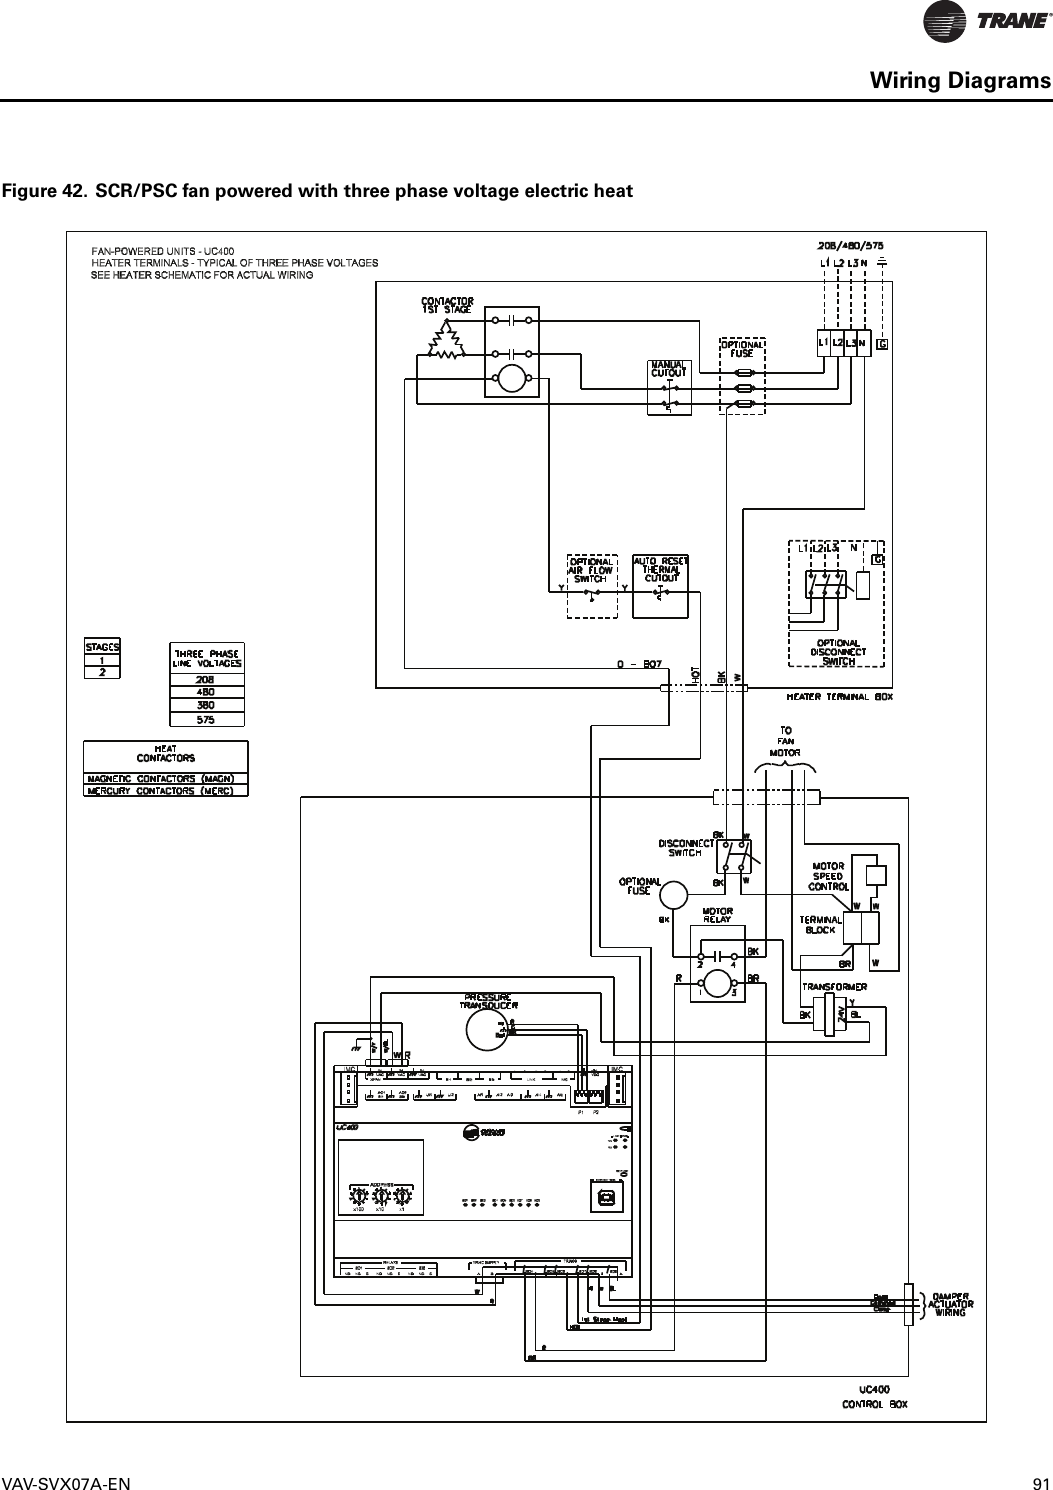 Nid Box Wiring Diagram Manual Guide